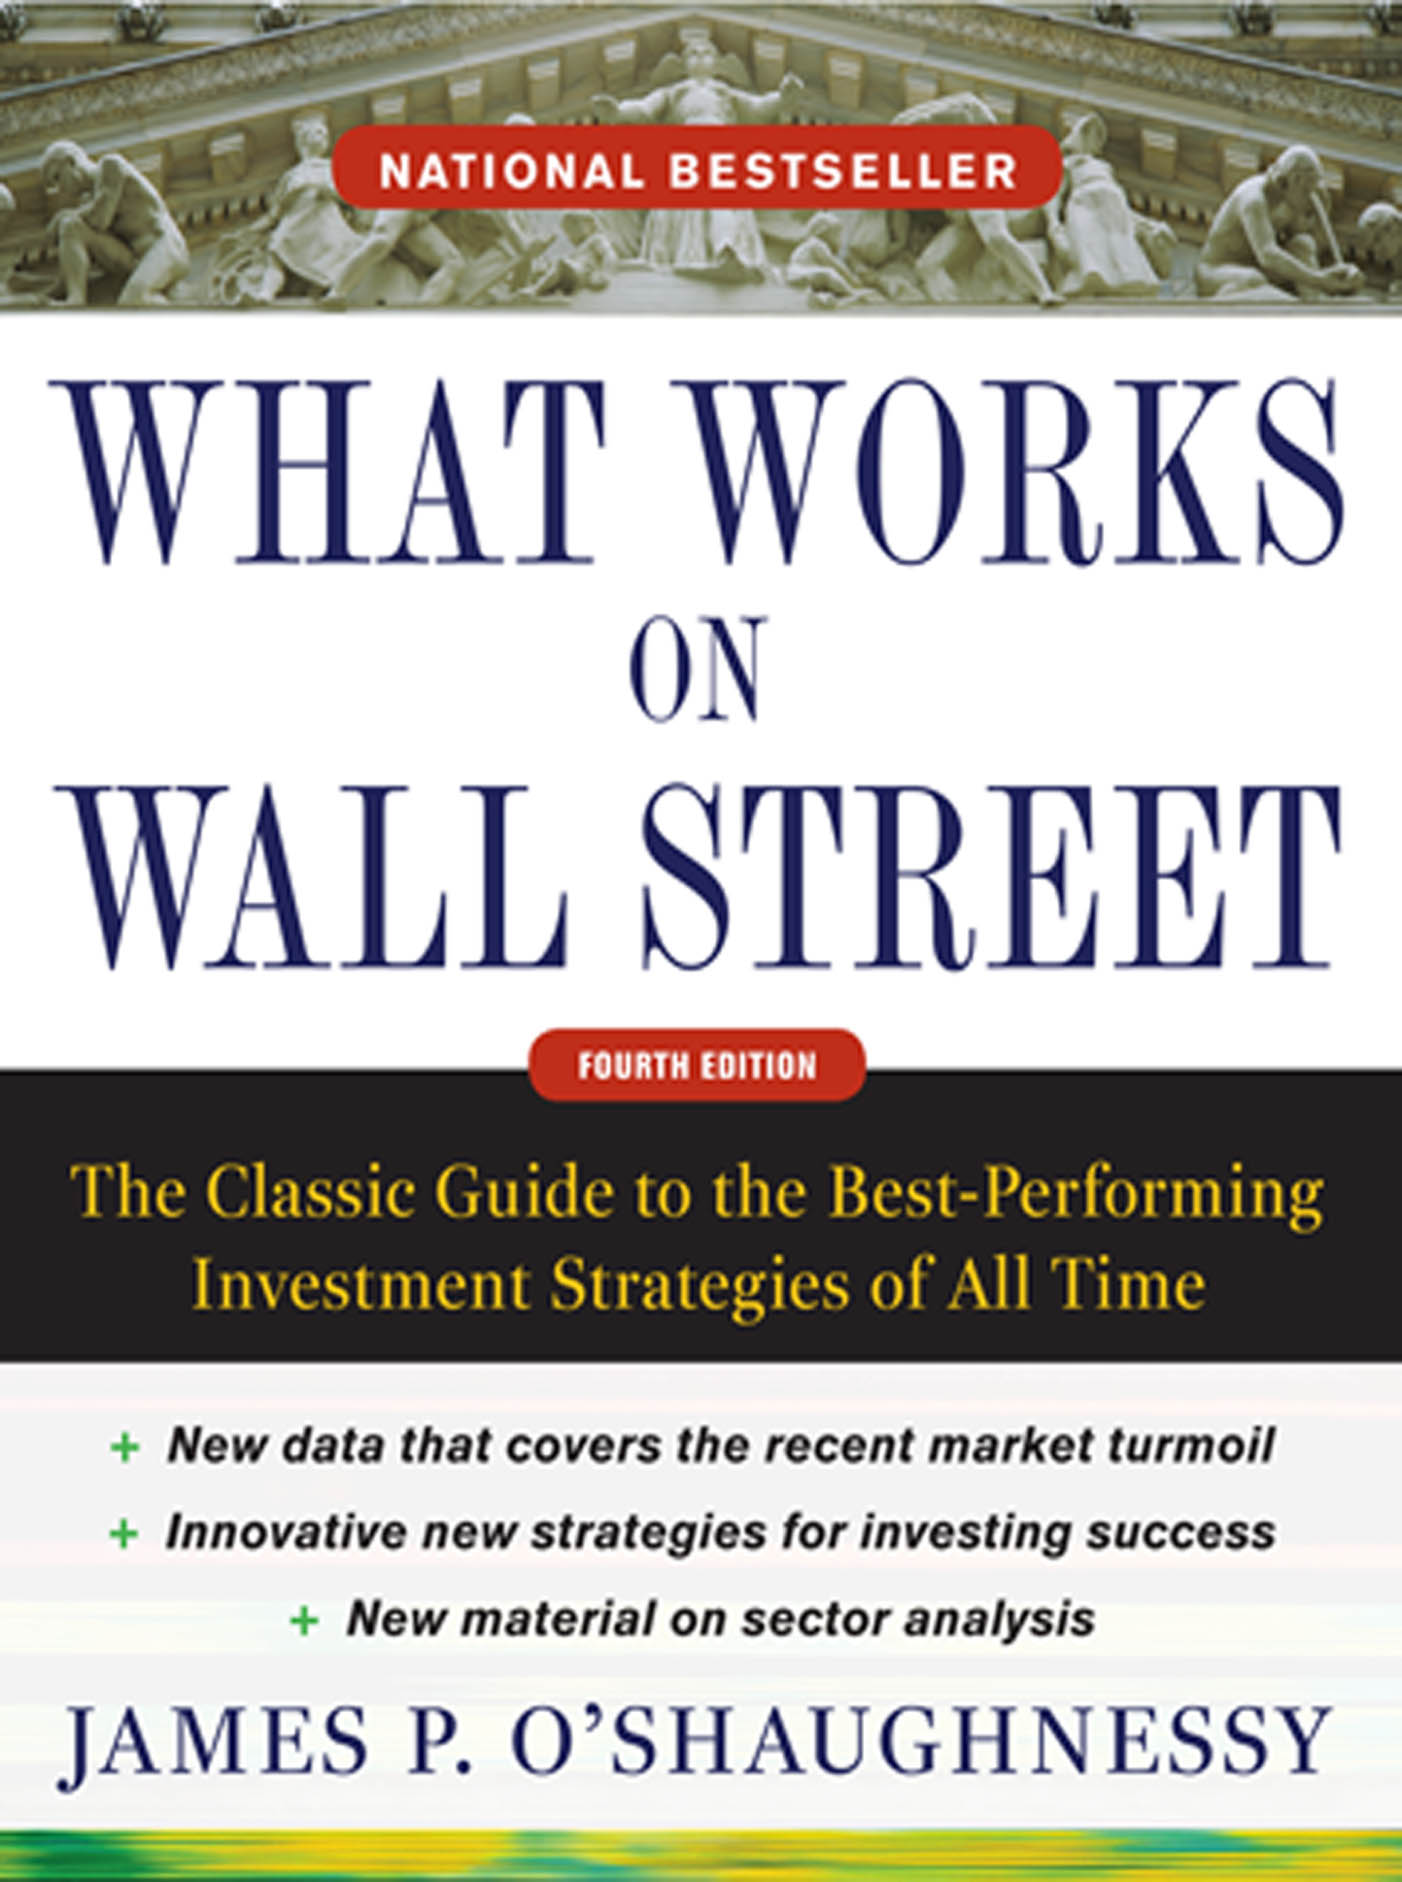 Download Ebook What Works on Wall Street, Fourth Edition: The Classic Guide to the Best-Performing Investment Strategies of All Time (4th ed.) by James P. O'Shaughnessy Pdf